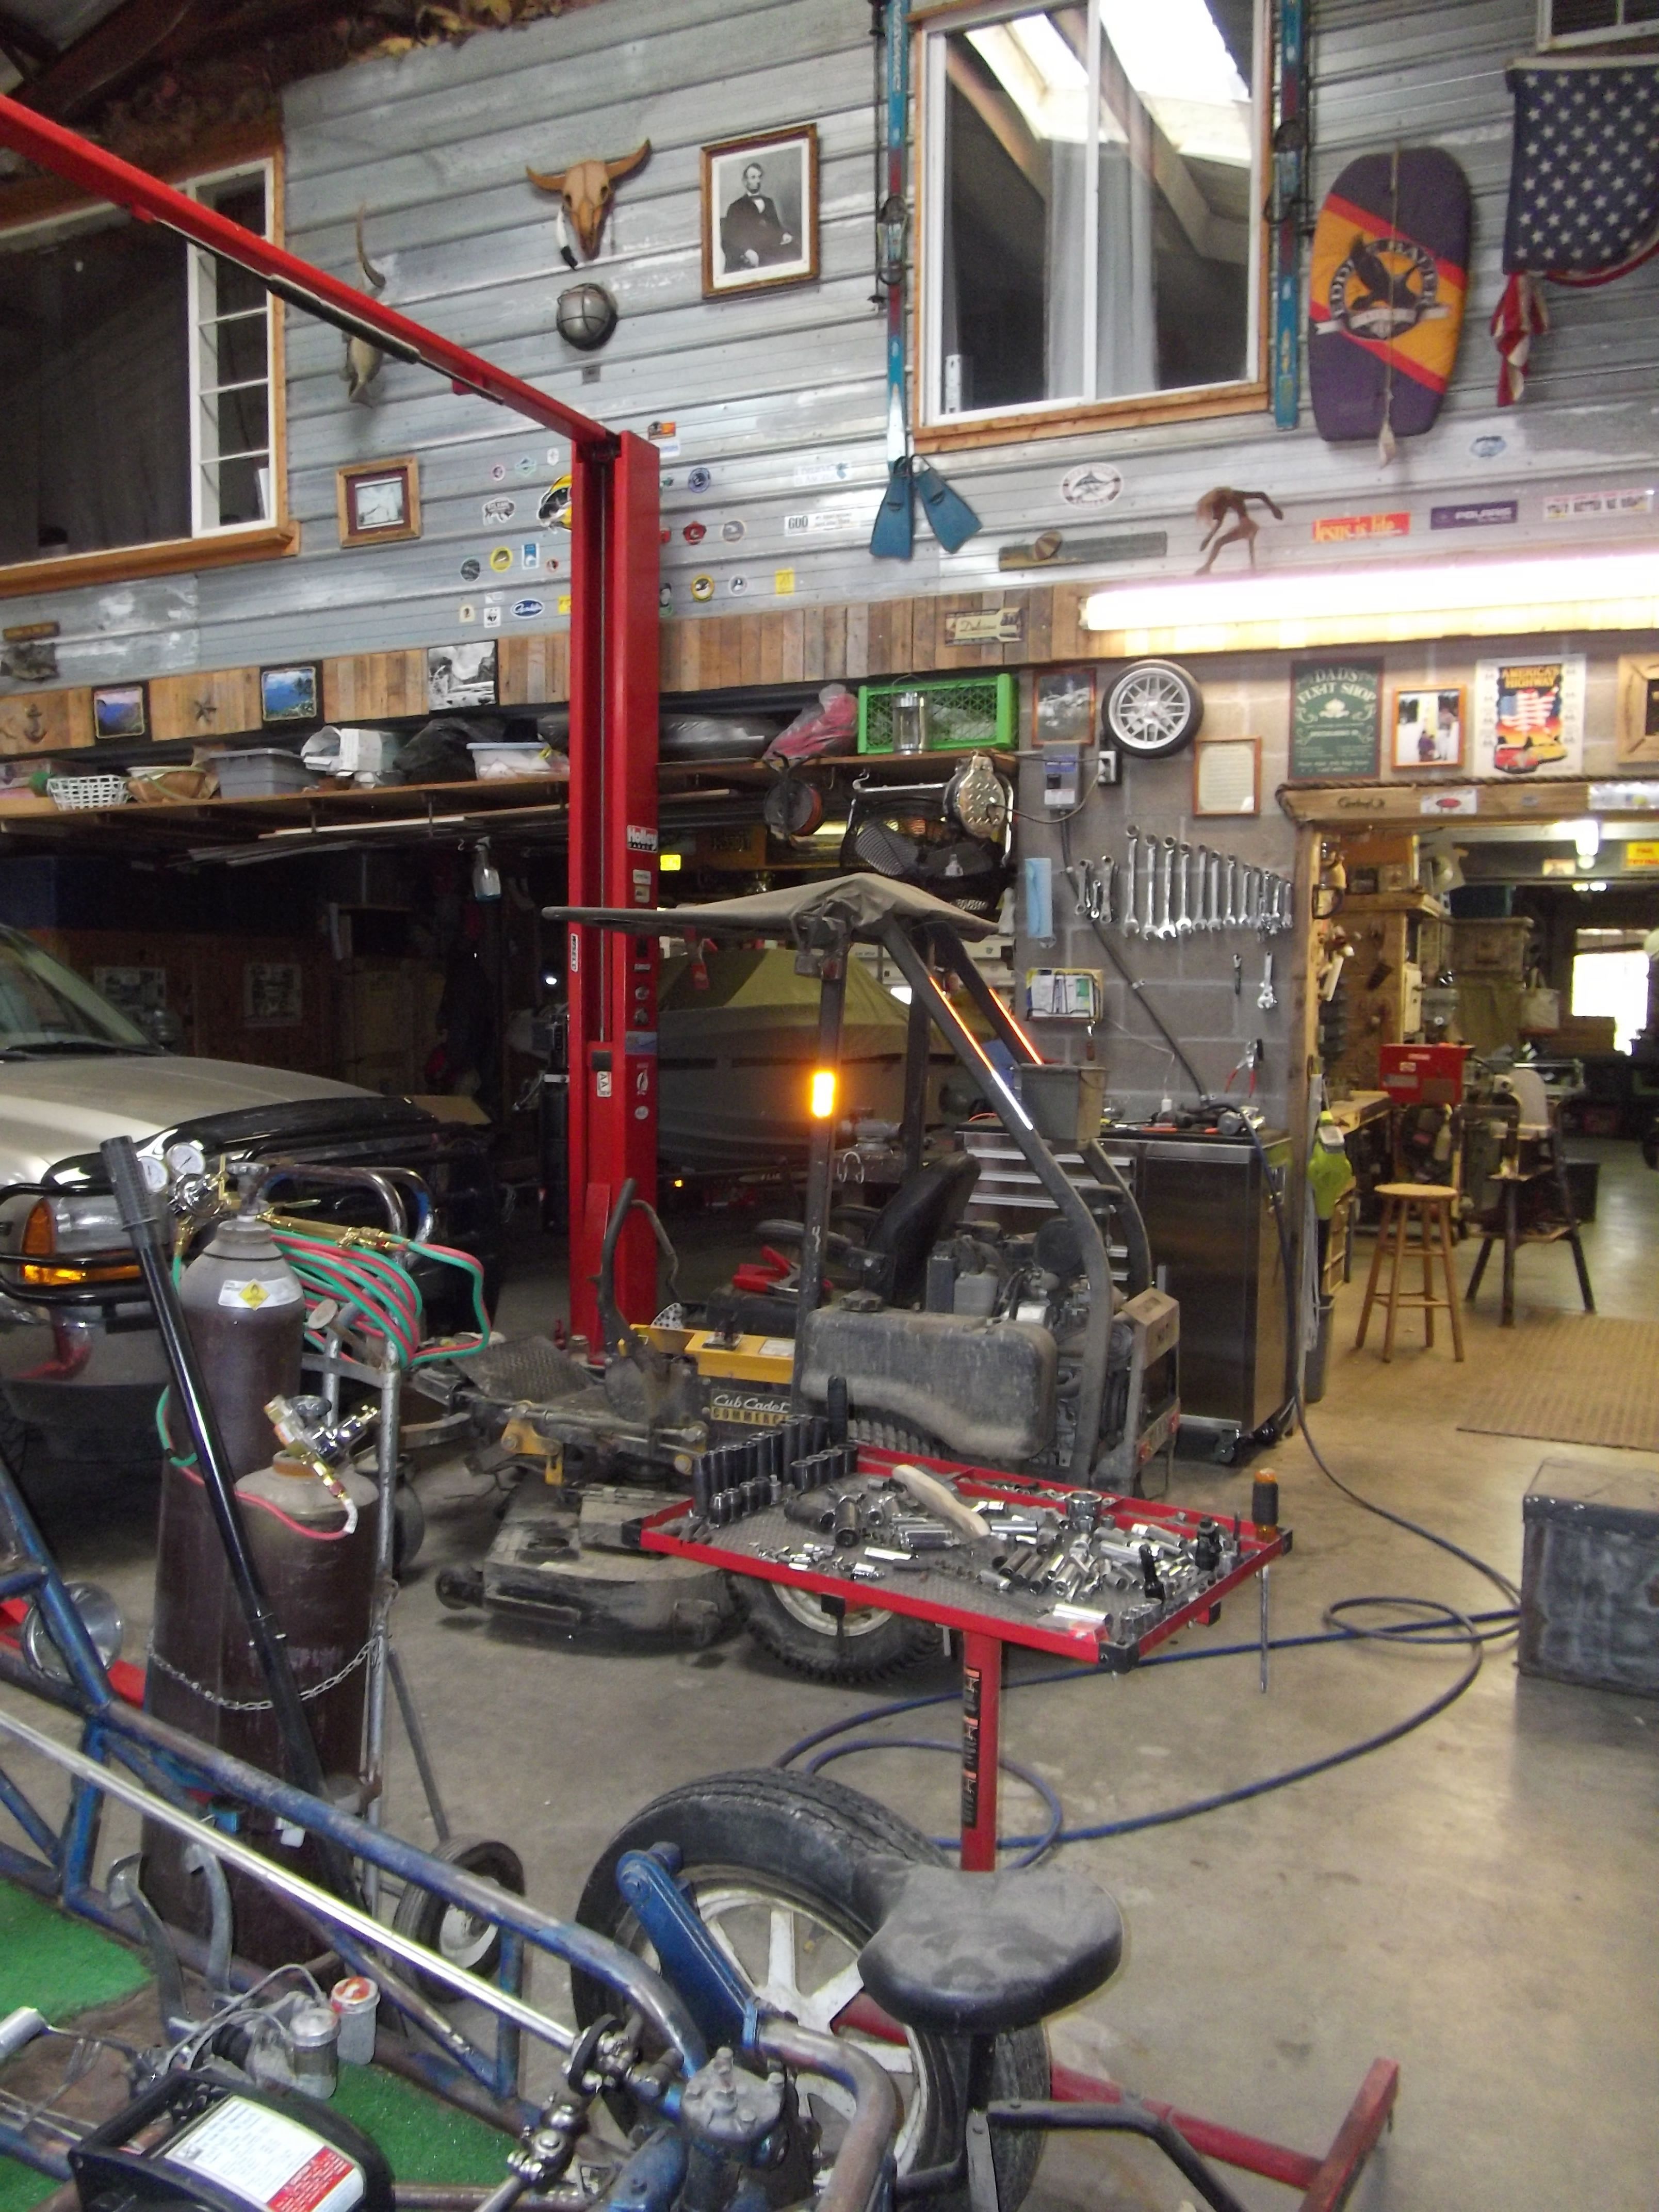 Best ideas about DIY Automotive Garage . Save or Pin Work Shop with auto lift Now.